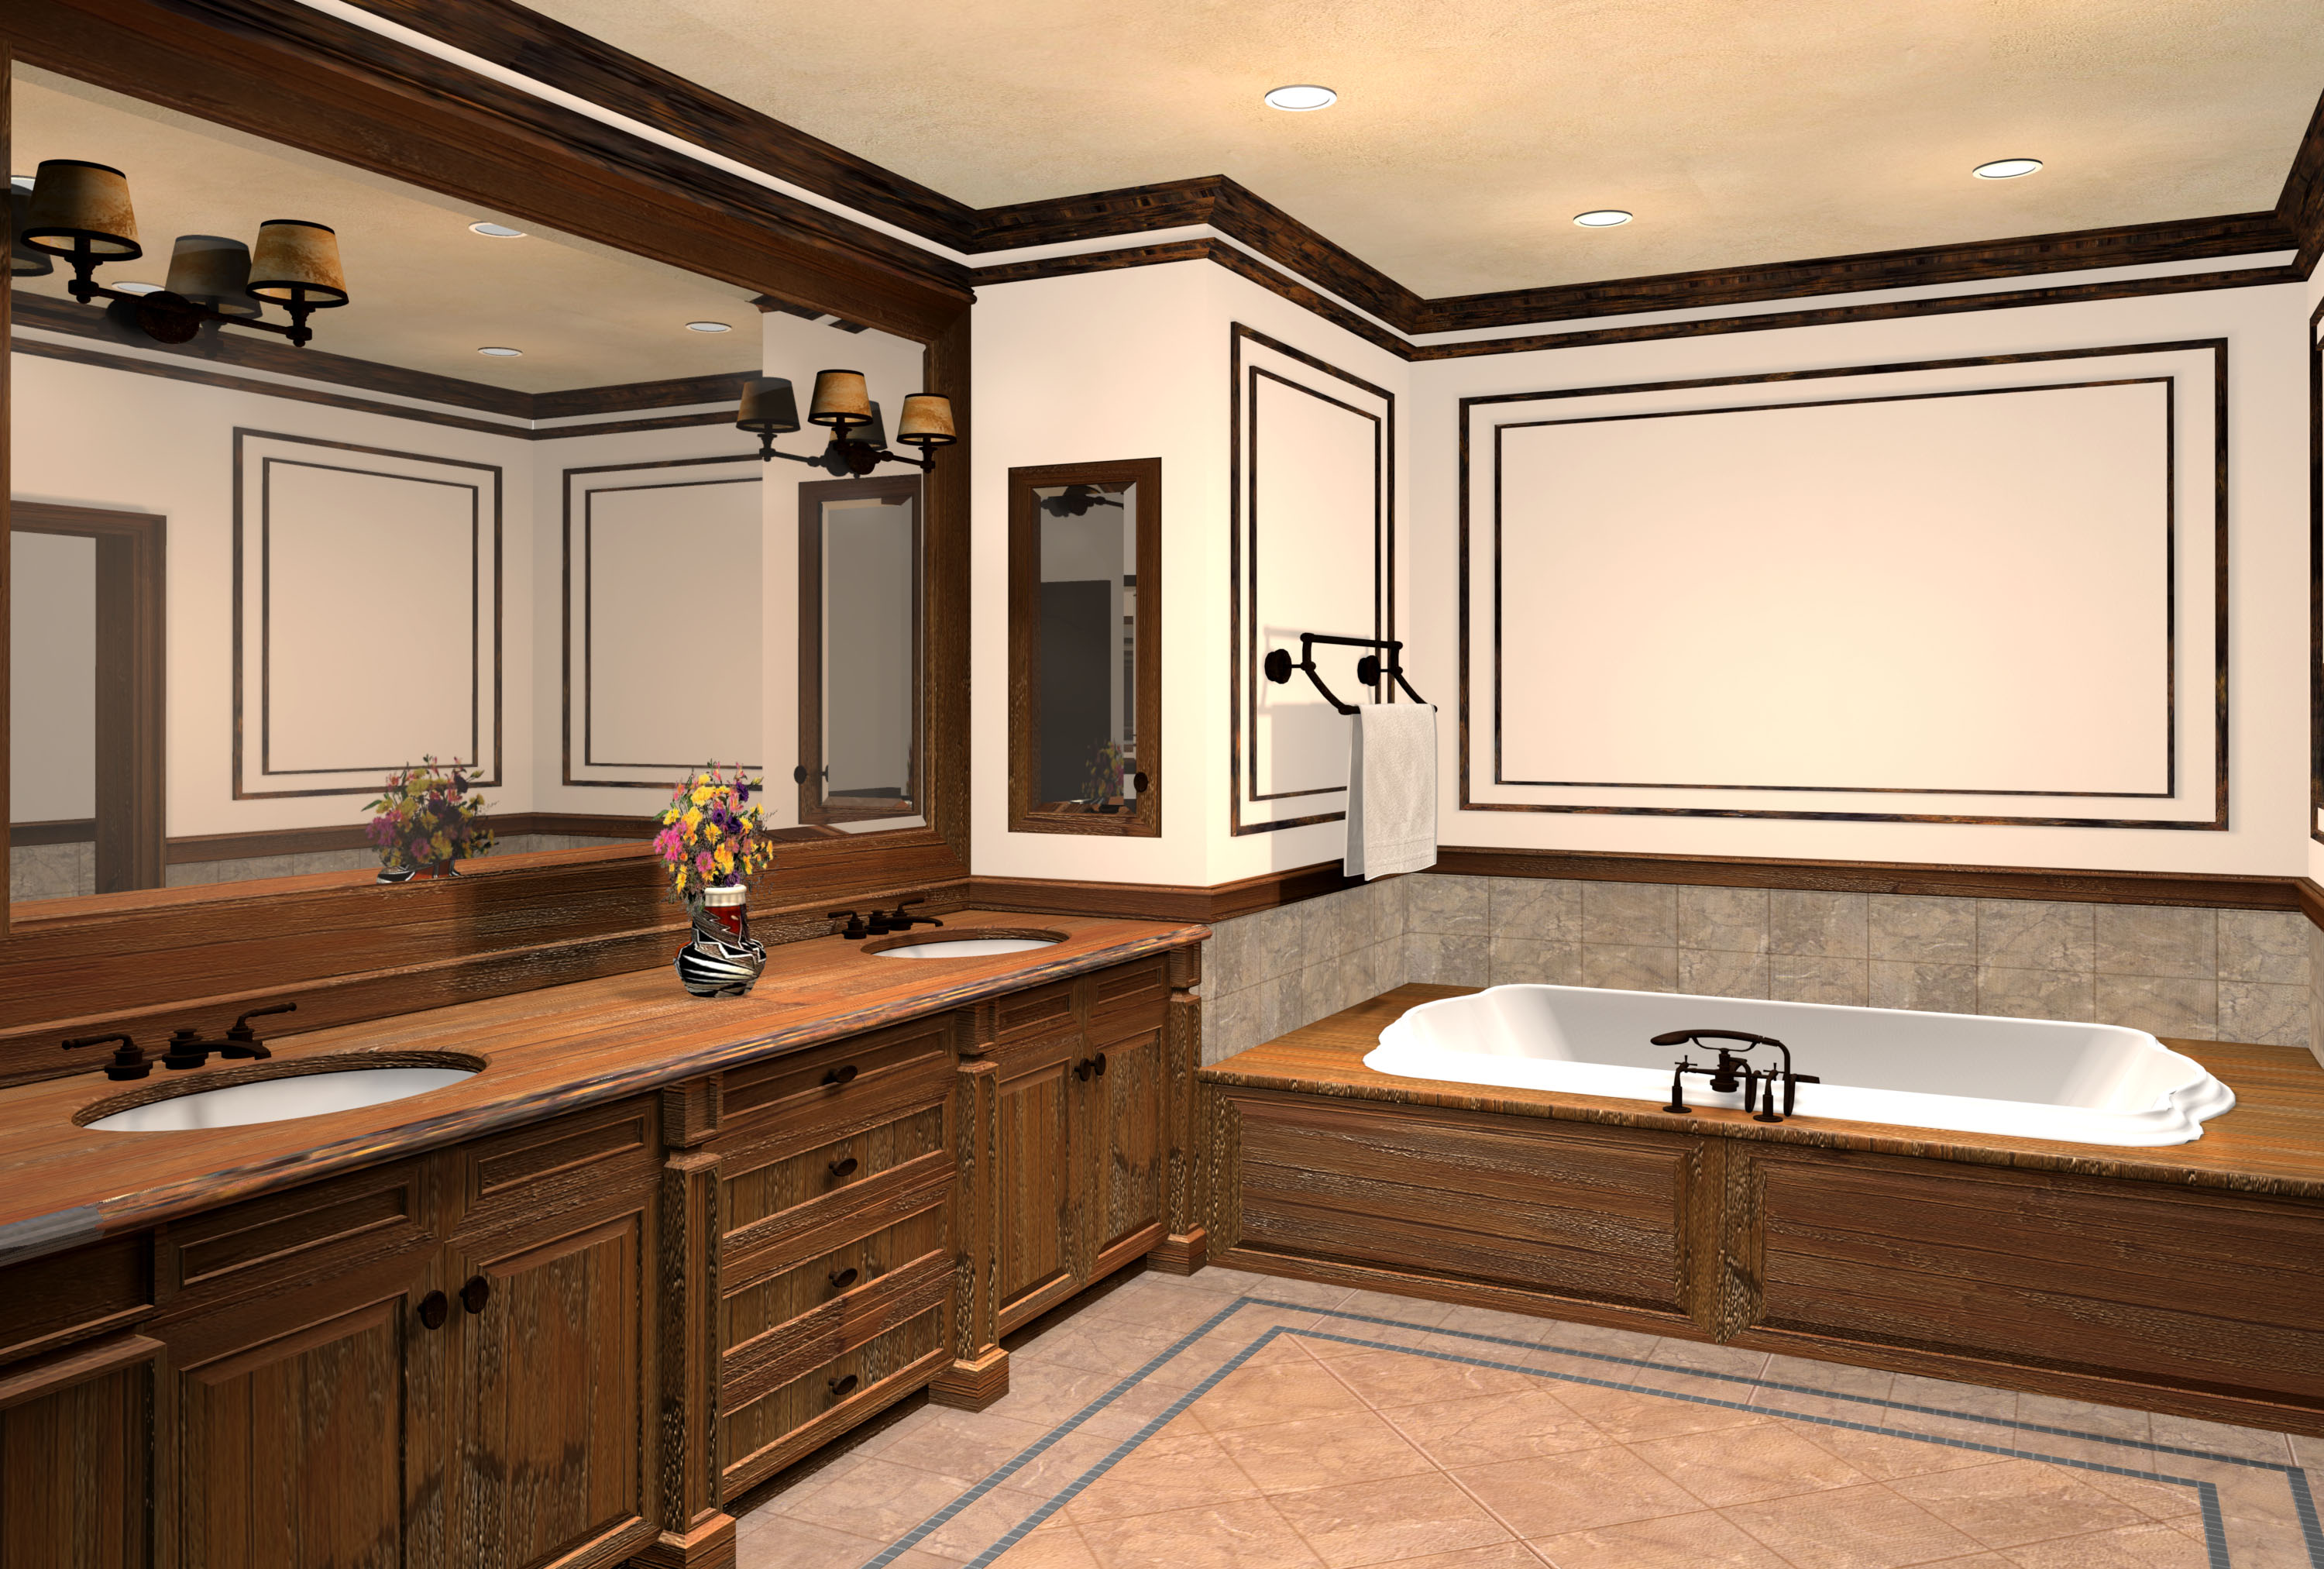 Luxurious Bathroom Design Ideassds